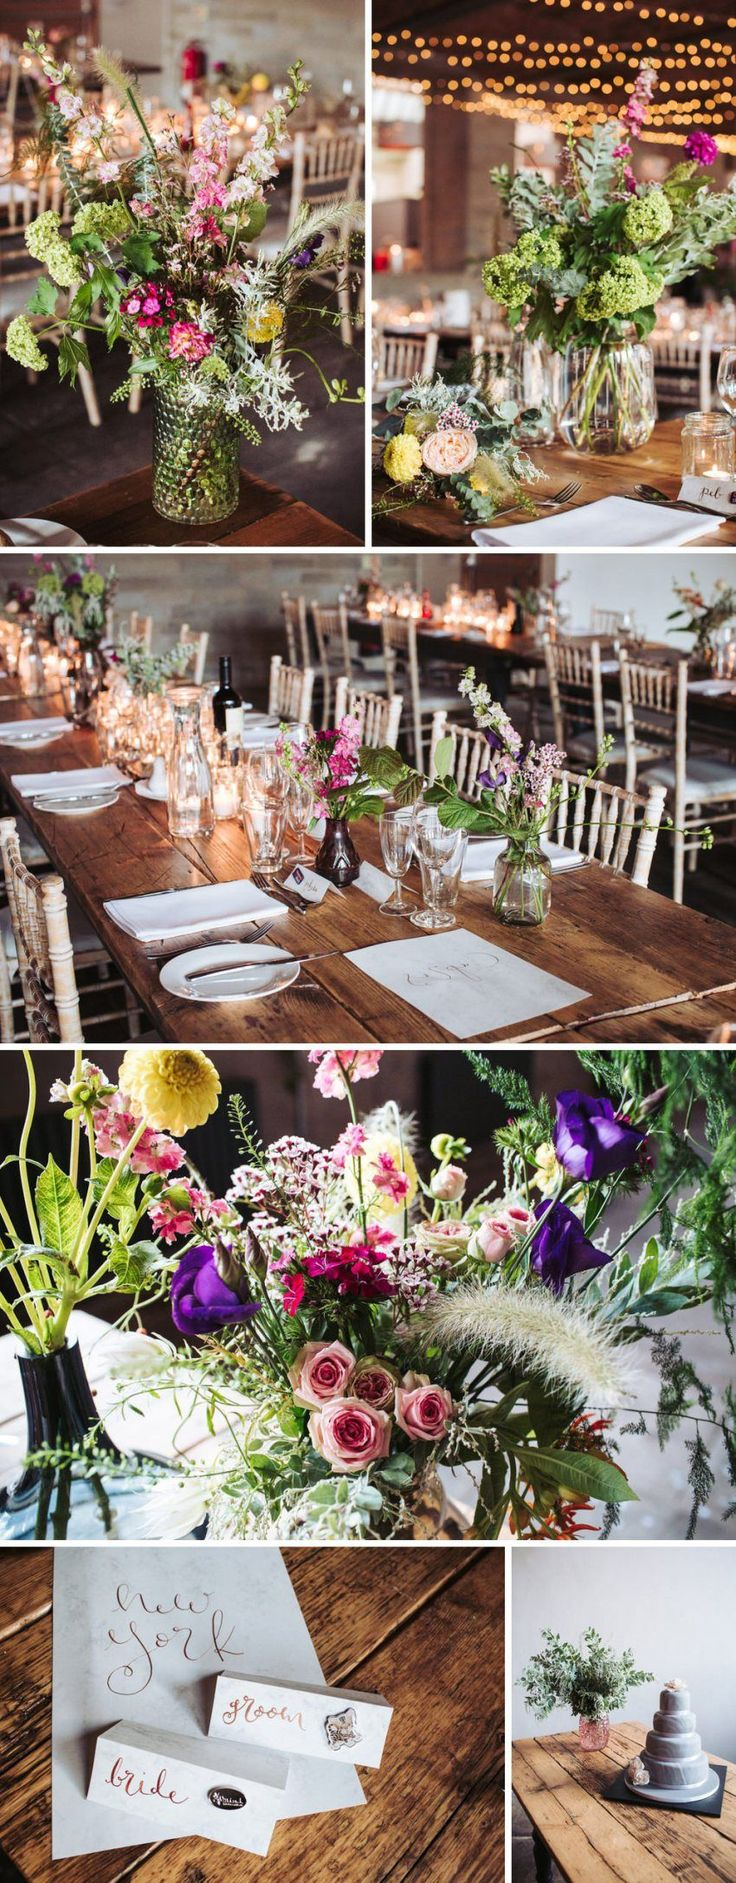 budget wedding venues north yorkshire%0A Industrial wedding venue Leeds  Yorkshire  Cool  rustic tables and flower  decorations at the